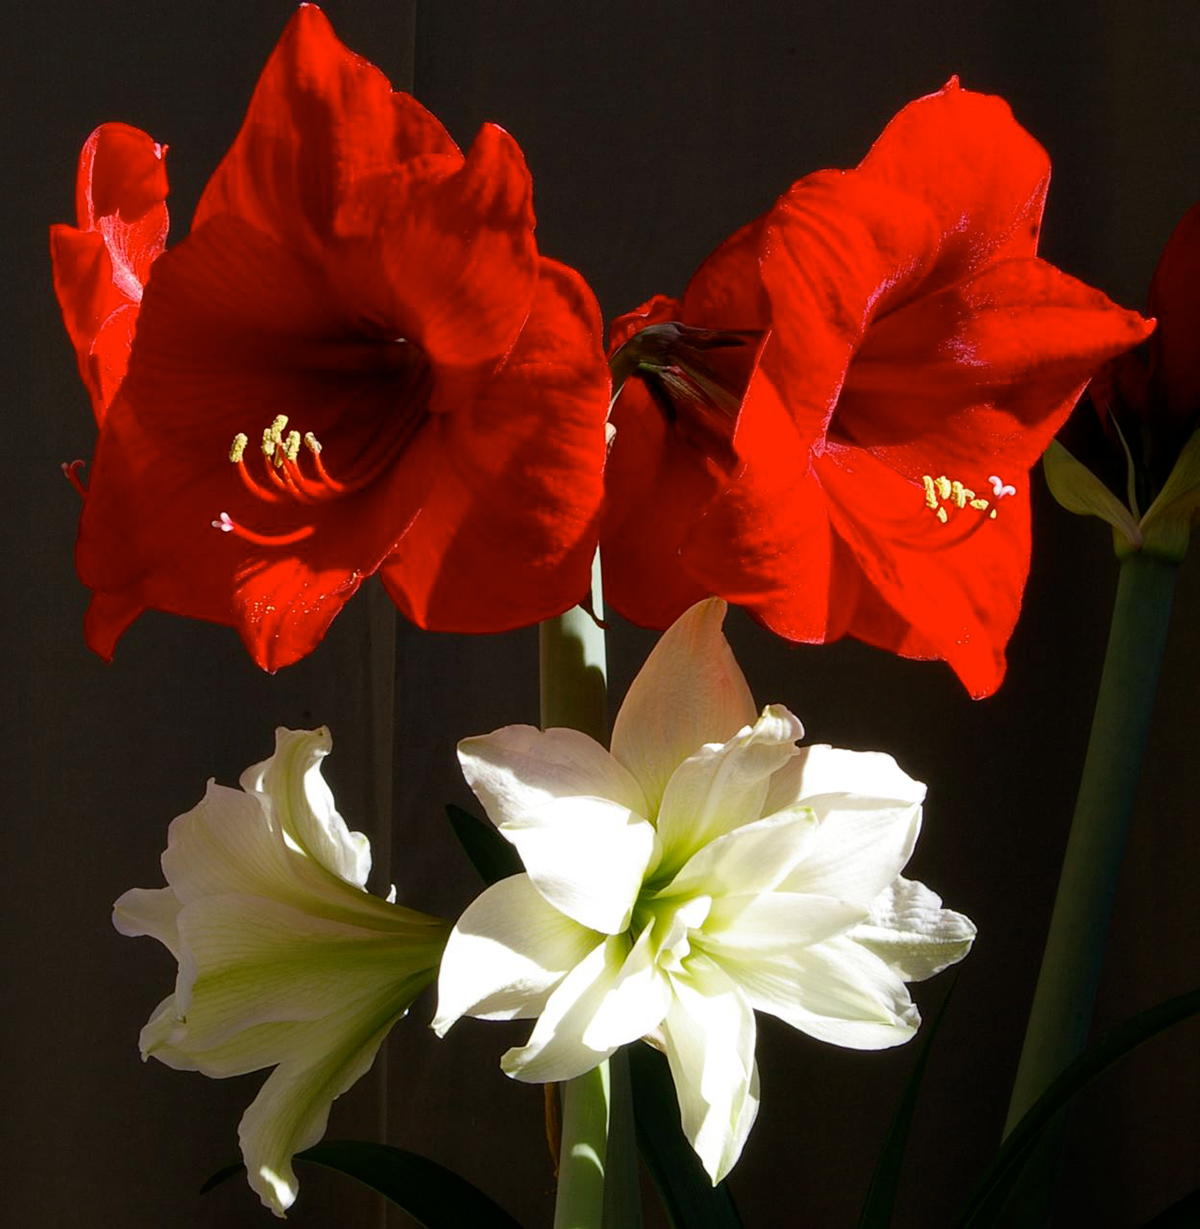 Red and white flowered amaryllis blooms